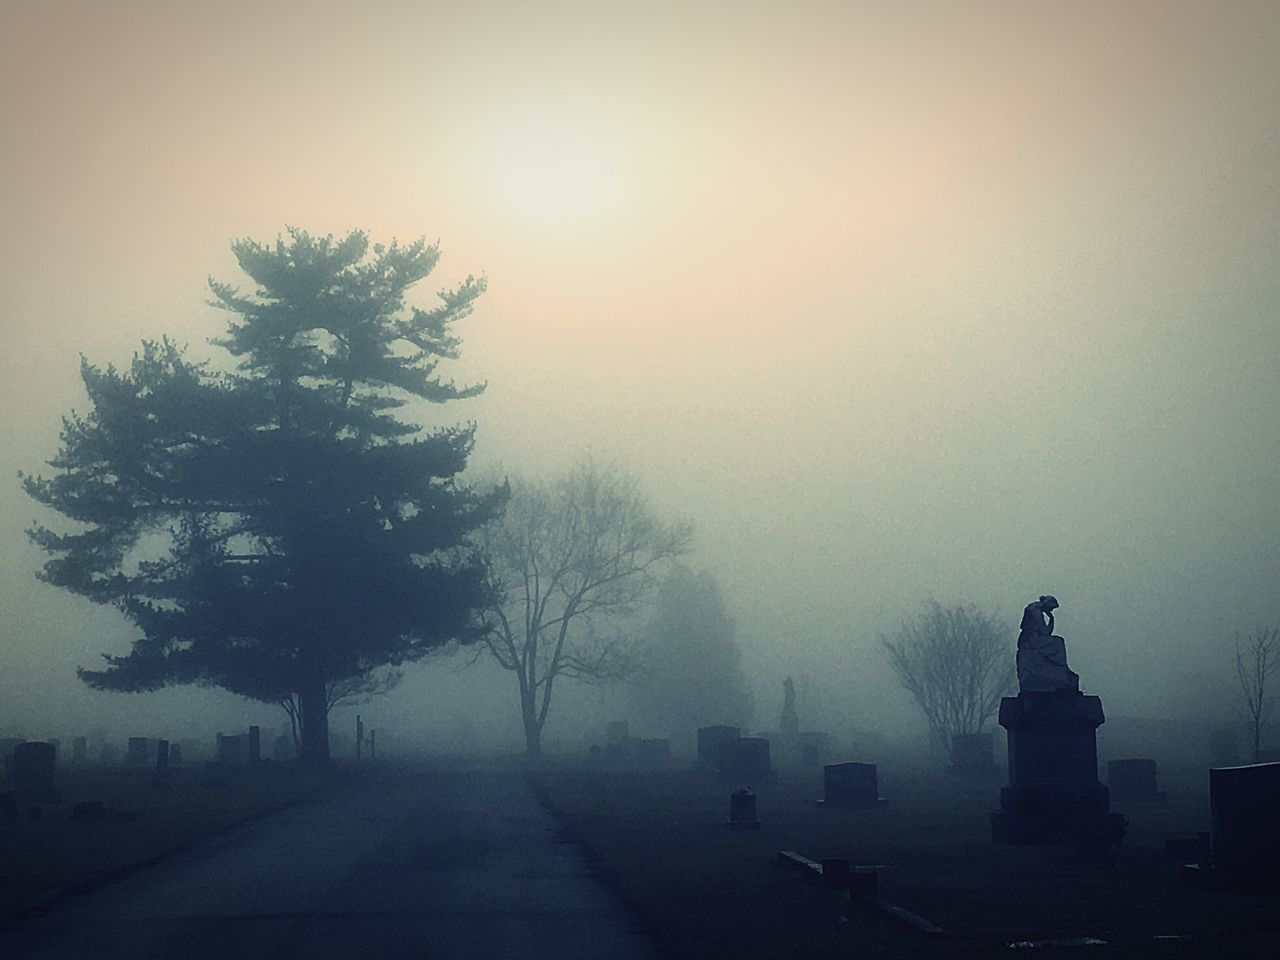 Tree Fog Nature No People Outdoors Sky Eye4photography  Tranquil Scene Beauty In Nature Edited By Me Eyeem Gallary Eyeem Market Silhouette Tranquility Dramatic Sky Dramatic Landscape Dramatic Scene Scenics Sunrise Silhouettes Road Foggy Morning Foggy Cemetary Beauty Cemetary Spooky Cemetary Shots